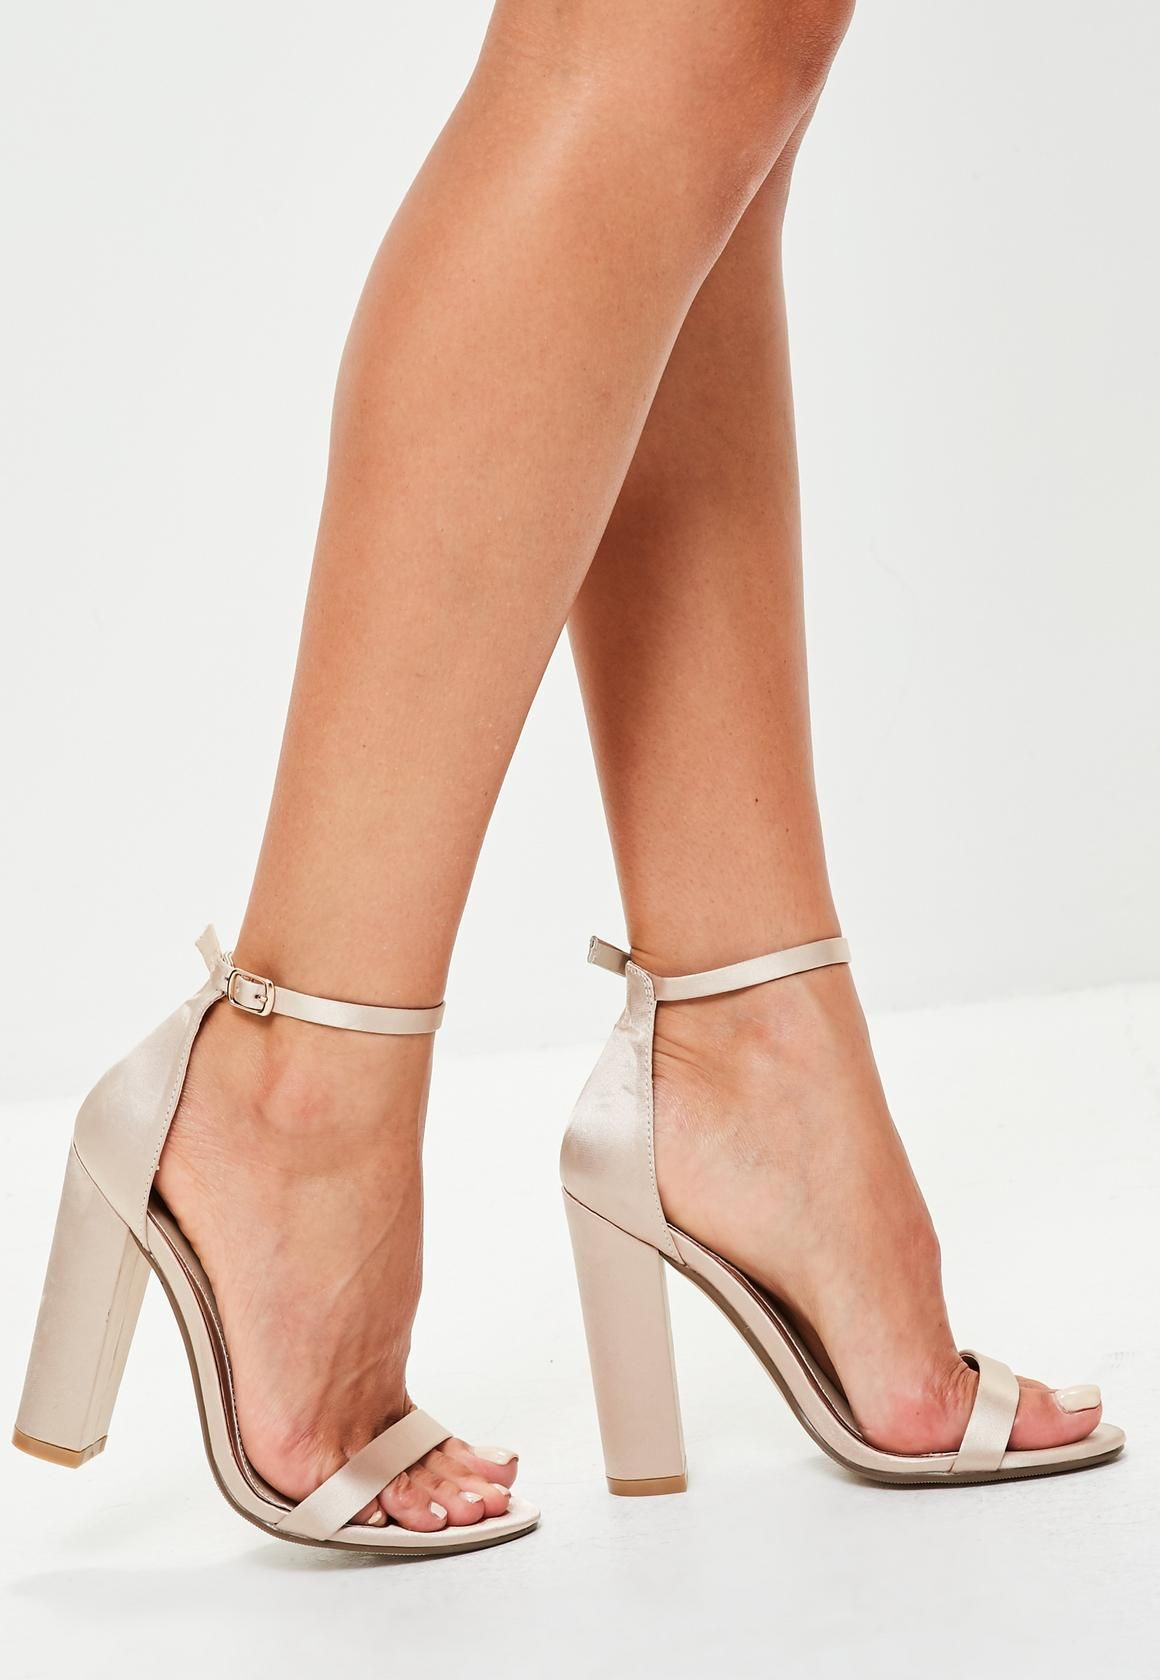 64a4f73145 Missguided - Nude Satin Block Heel Barely There Sandals | Block back ...